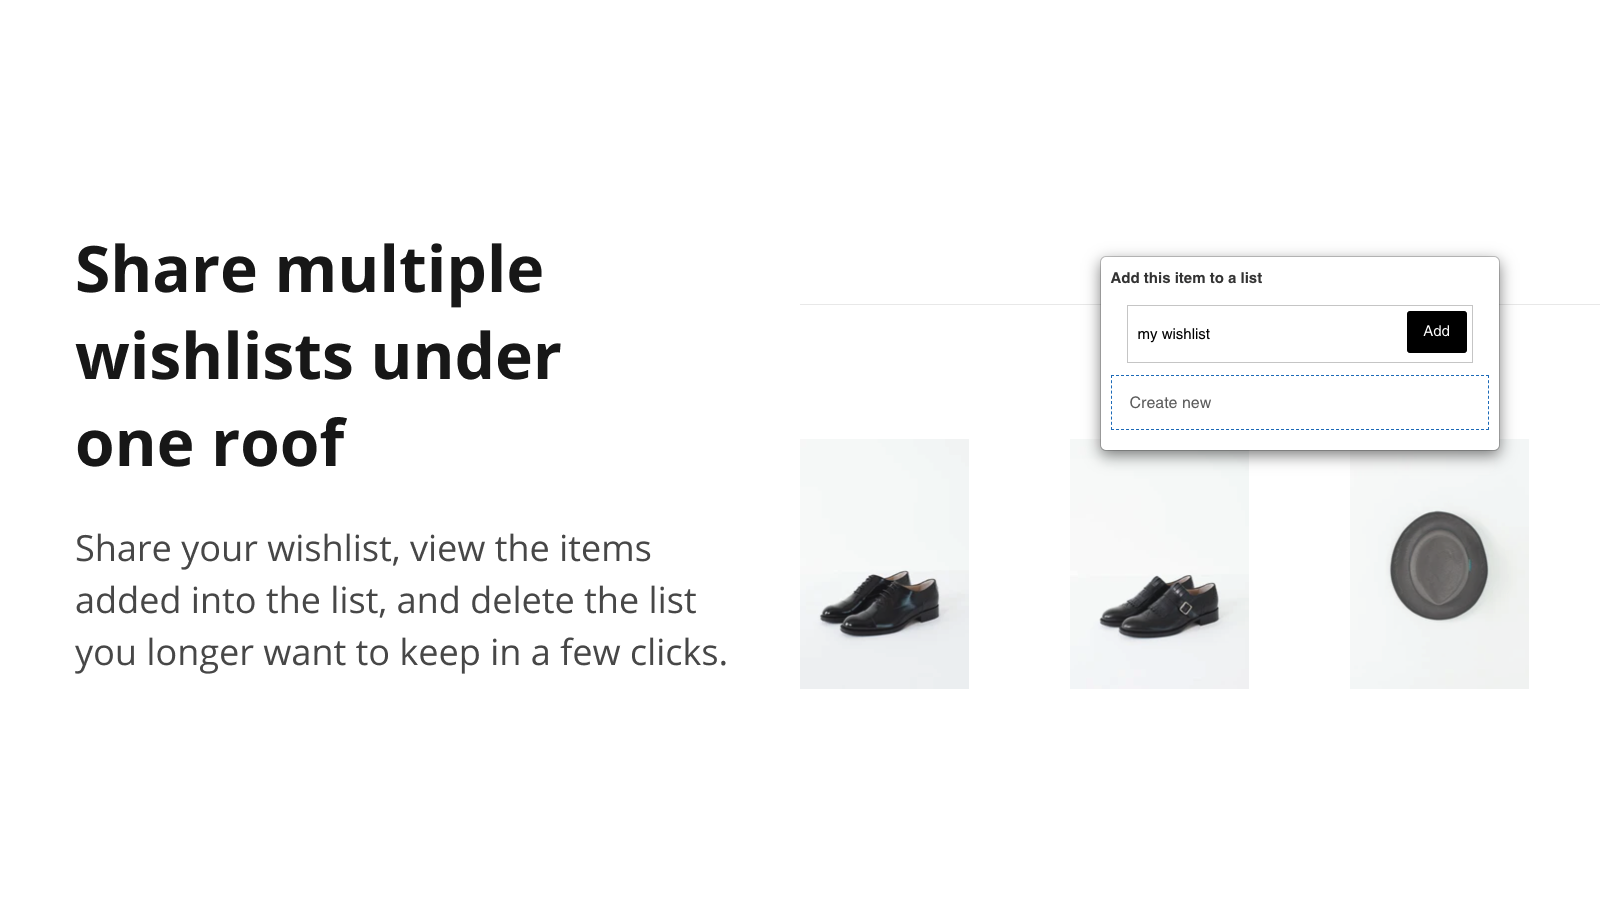 Share multiple wishlists under one roof